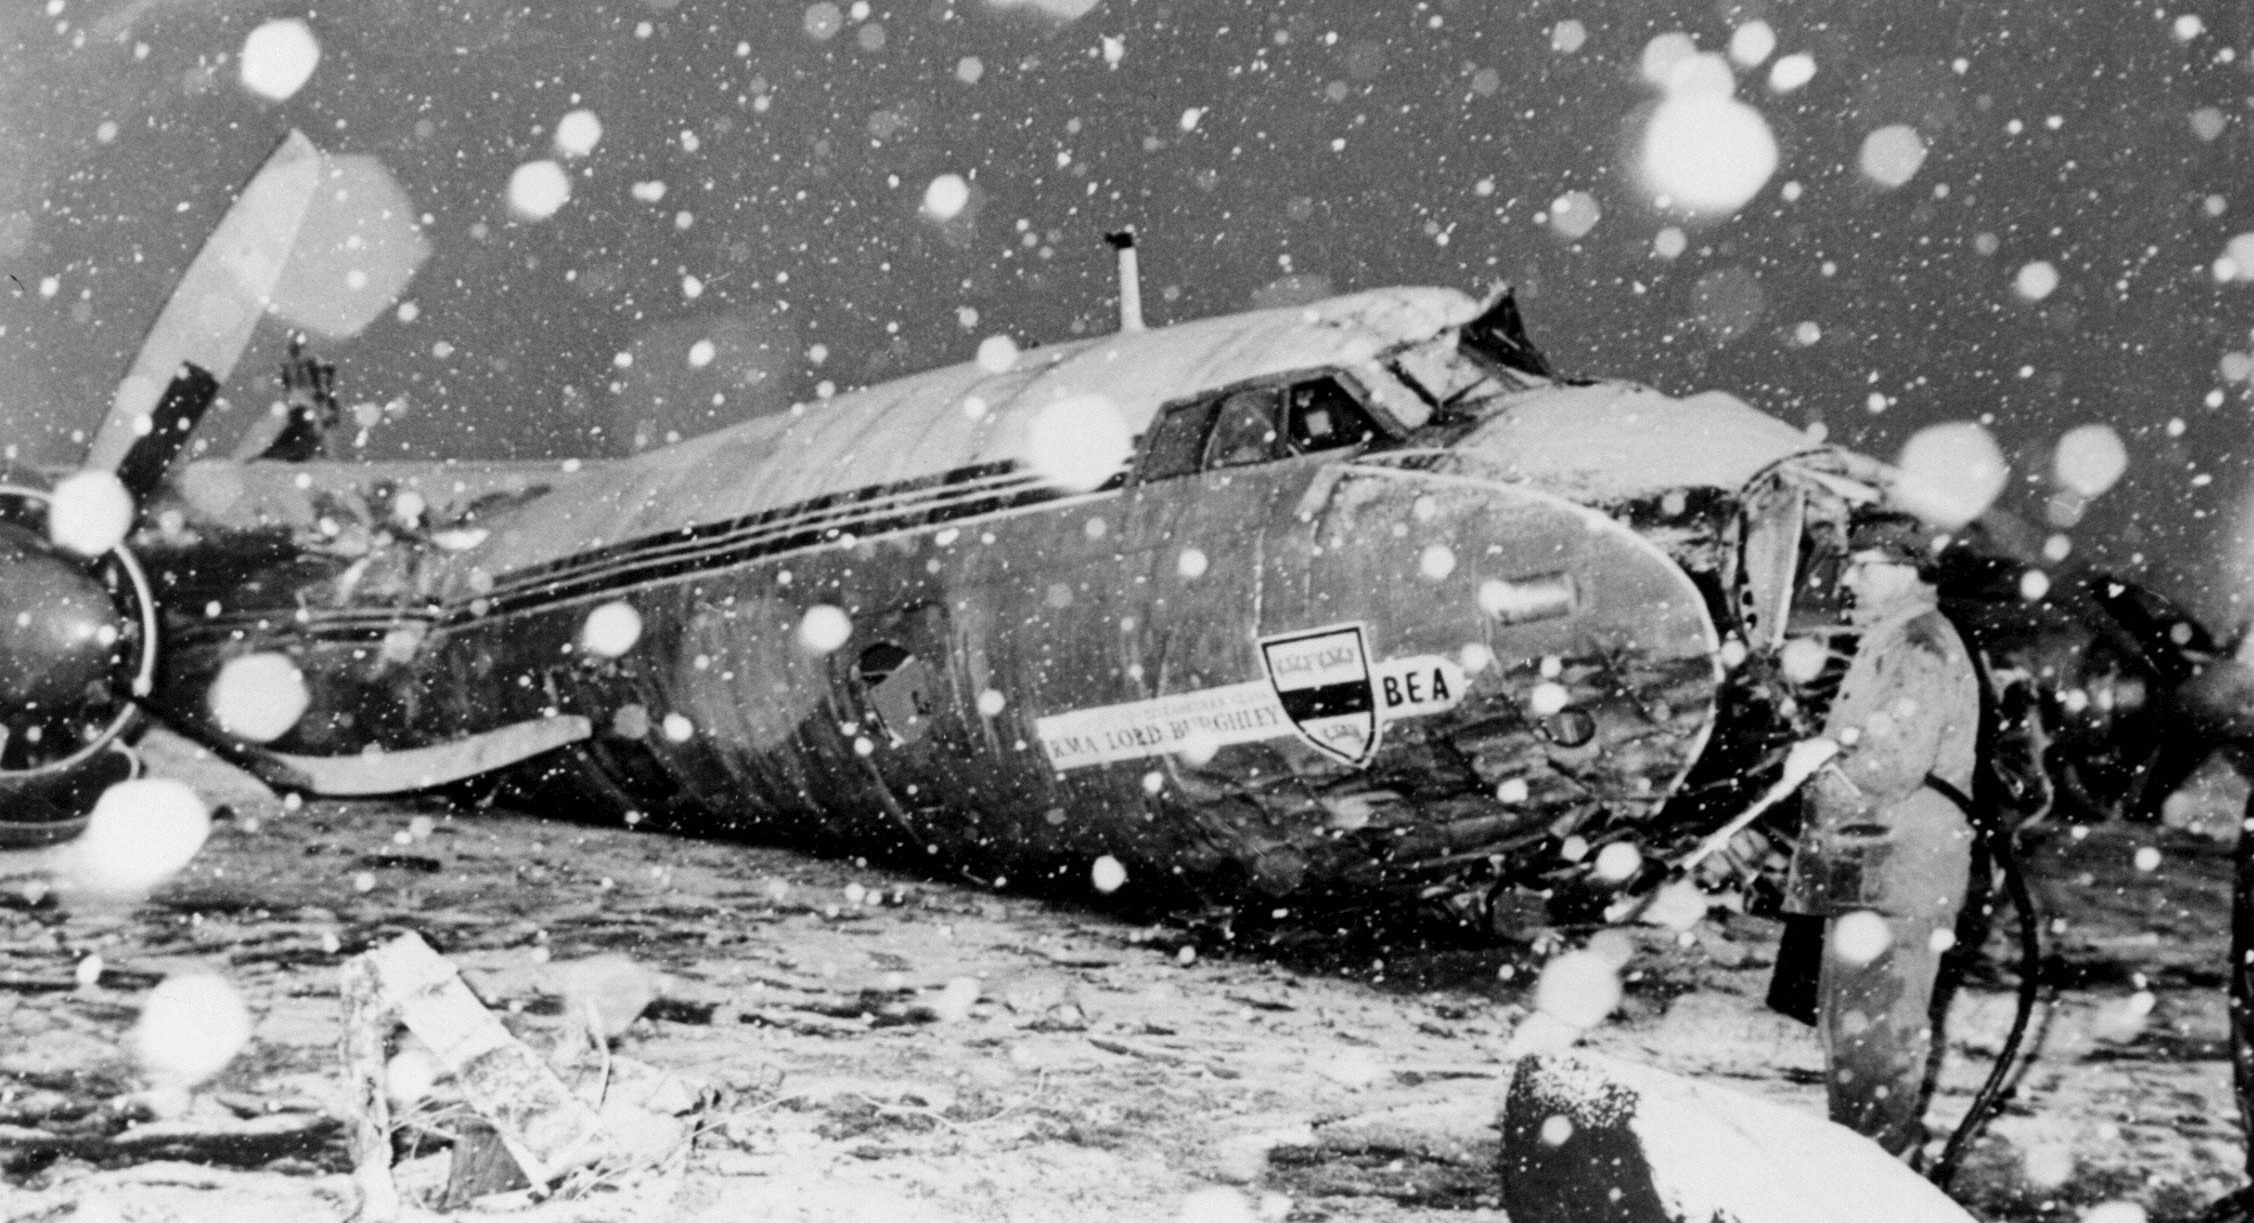 The wreckage of the British European Airways plane which crashed in Munich on February 6, 1958, while bringing home members of the Manchester United football team from a European Cup match.